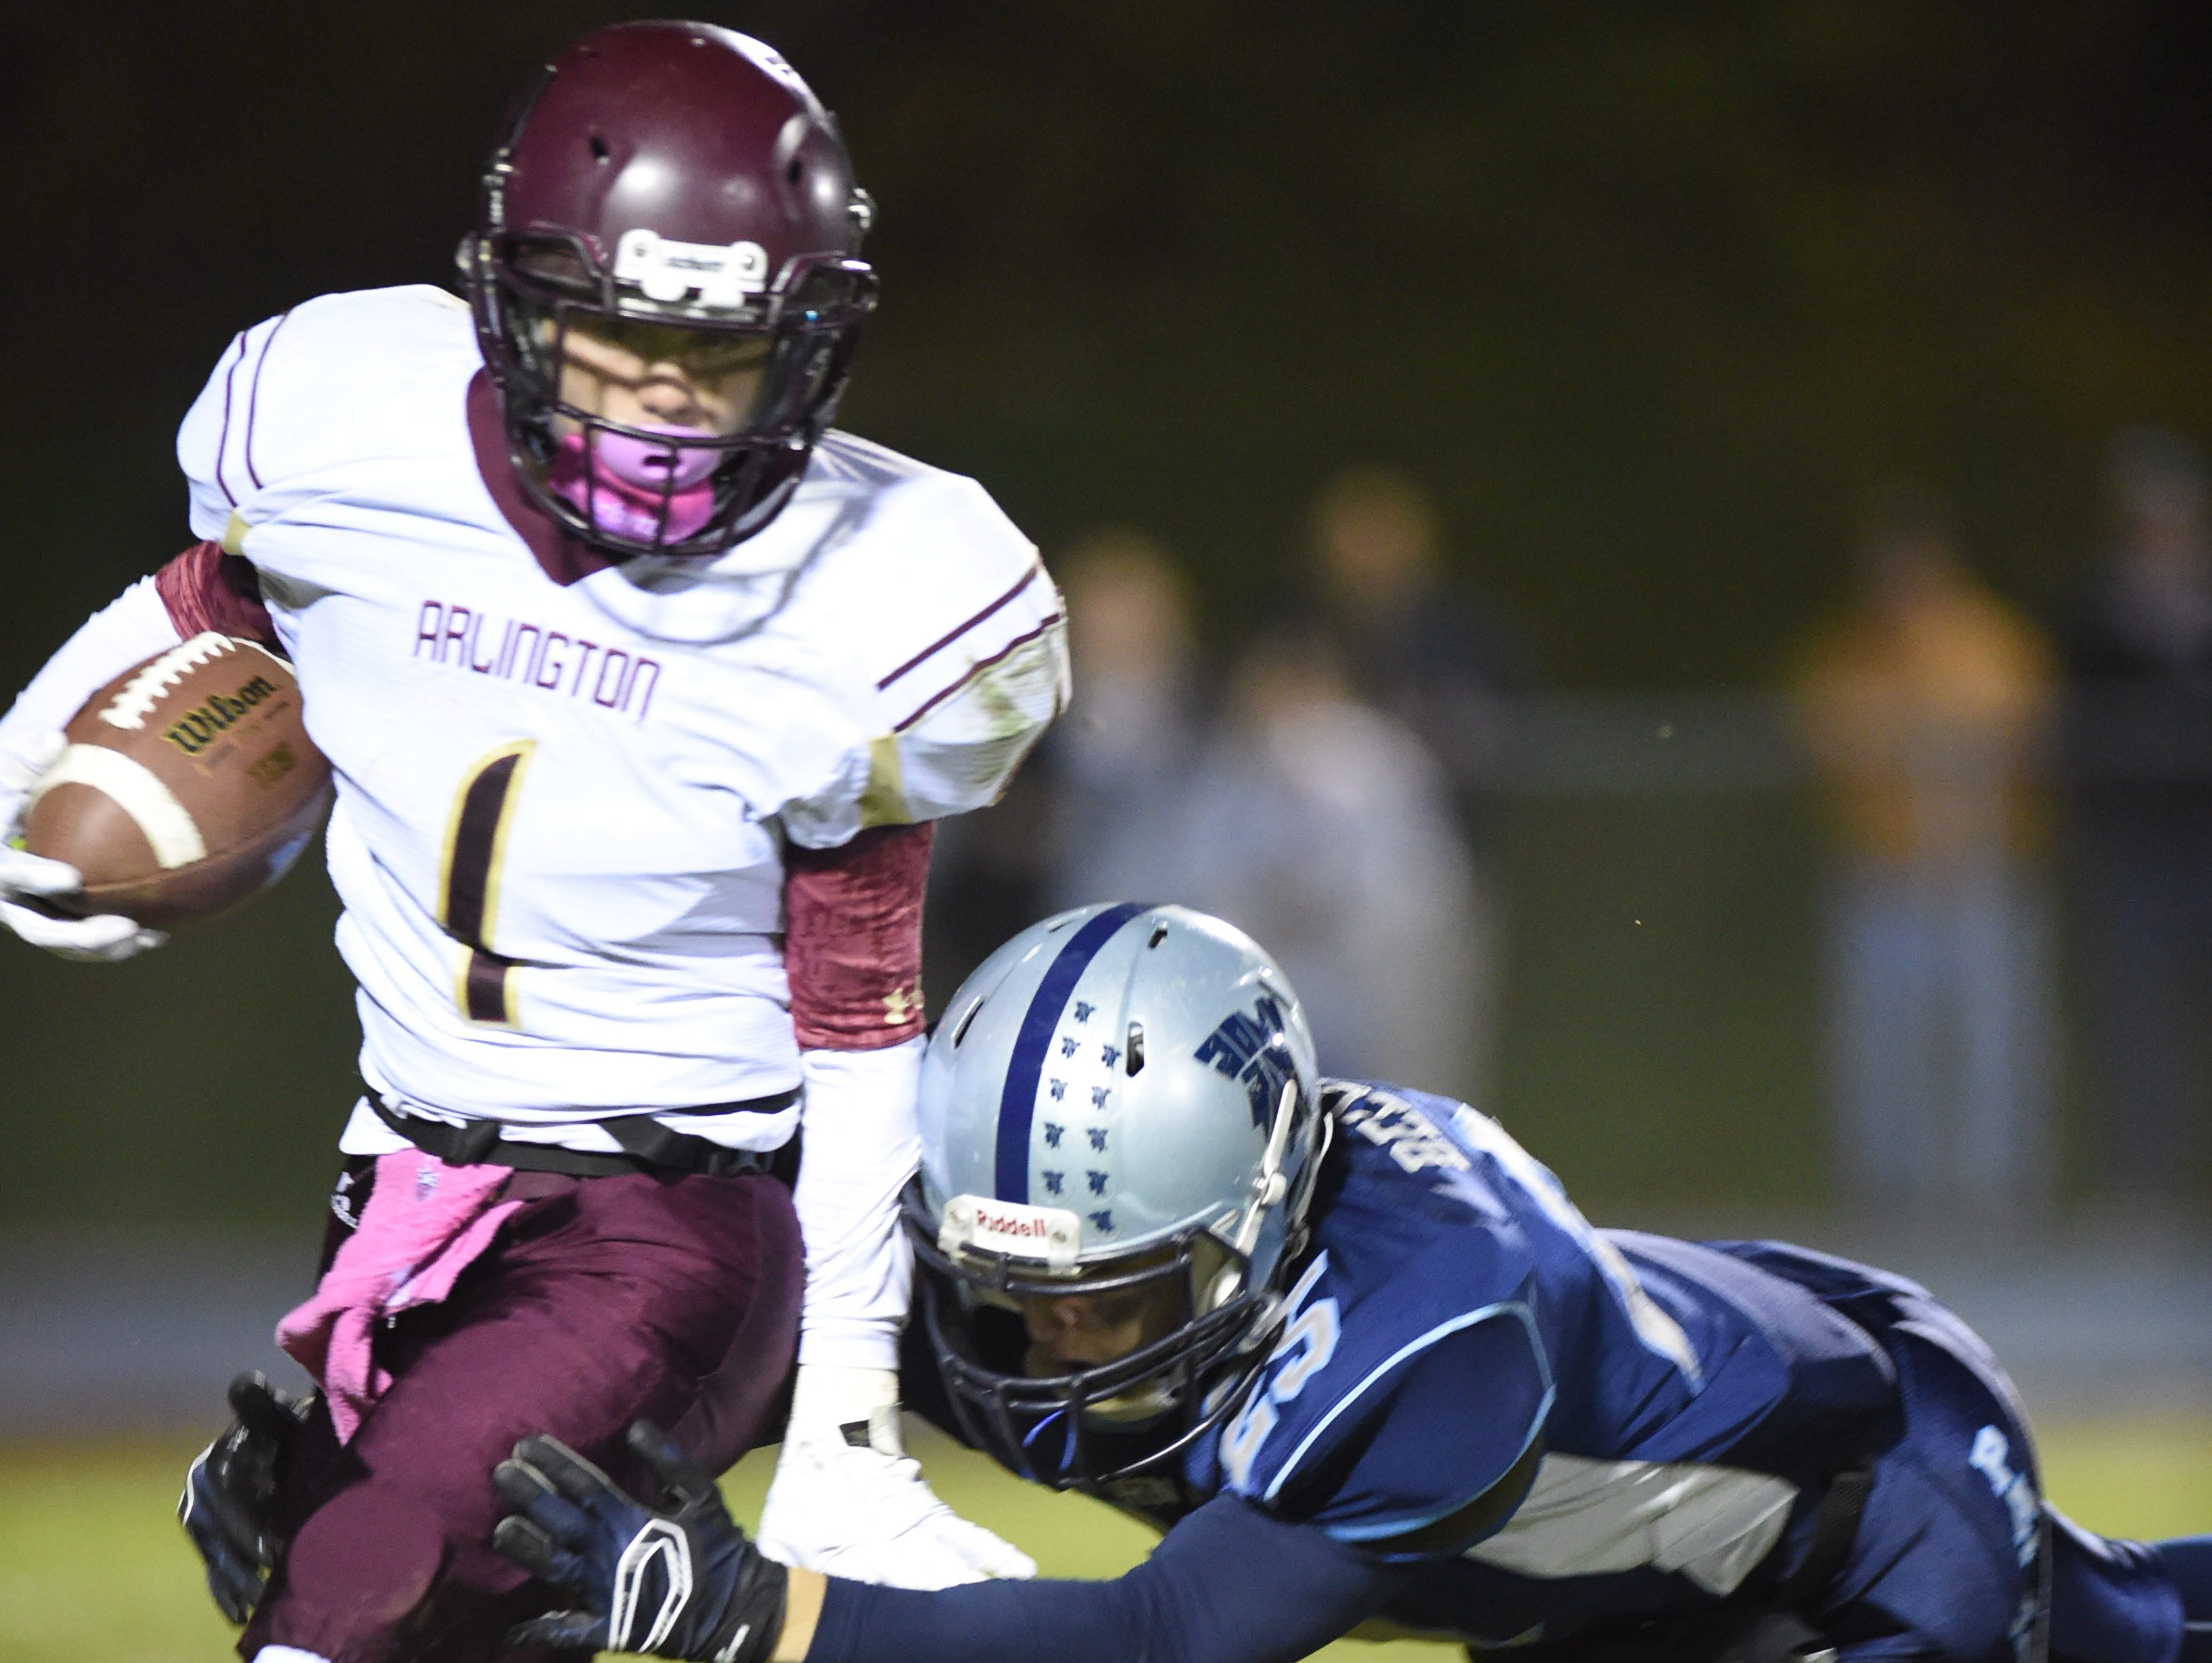 Arlington's Anthony Lantern gets tackled by John Jay's Todd Belotti during Friday's game in Wiccopee.